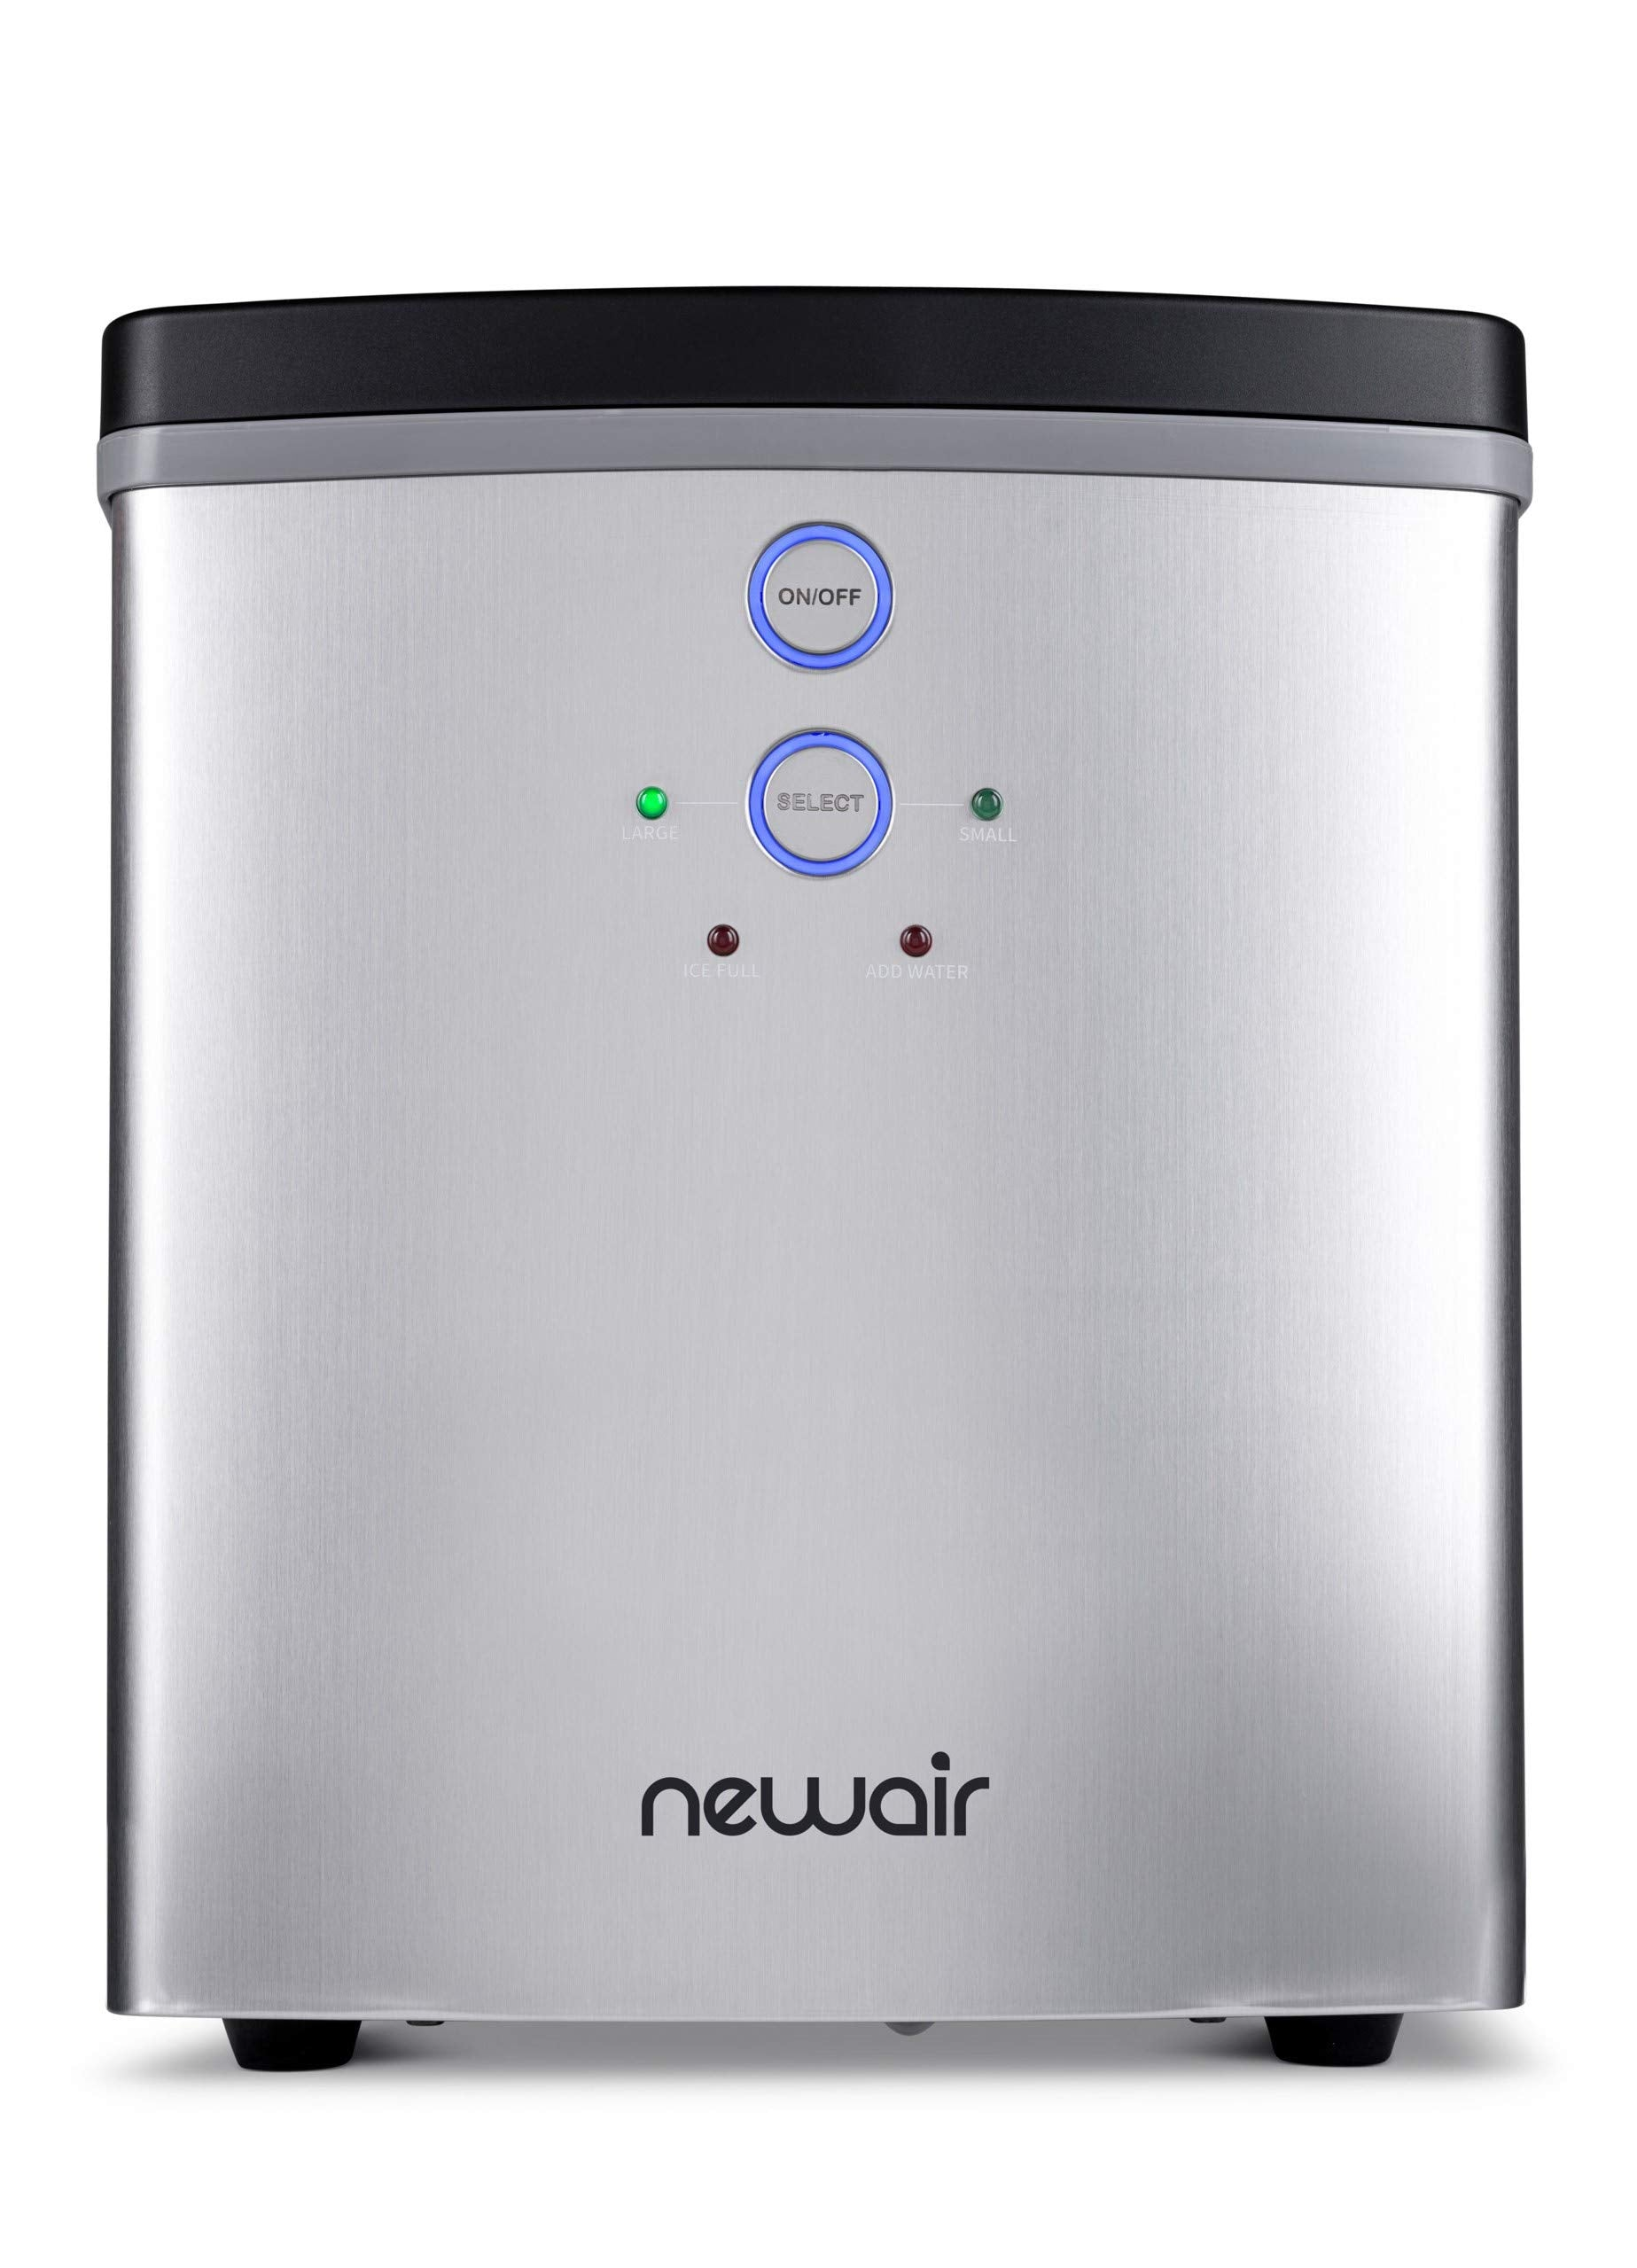 NewAir Portable Maker 33 lb 2 Ice Size Bullets Daily, Perfect Machine for Countertops, NIM033SS00, Stainless Steel